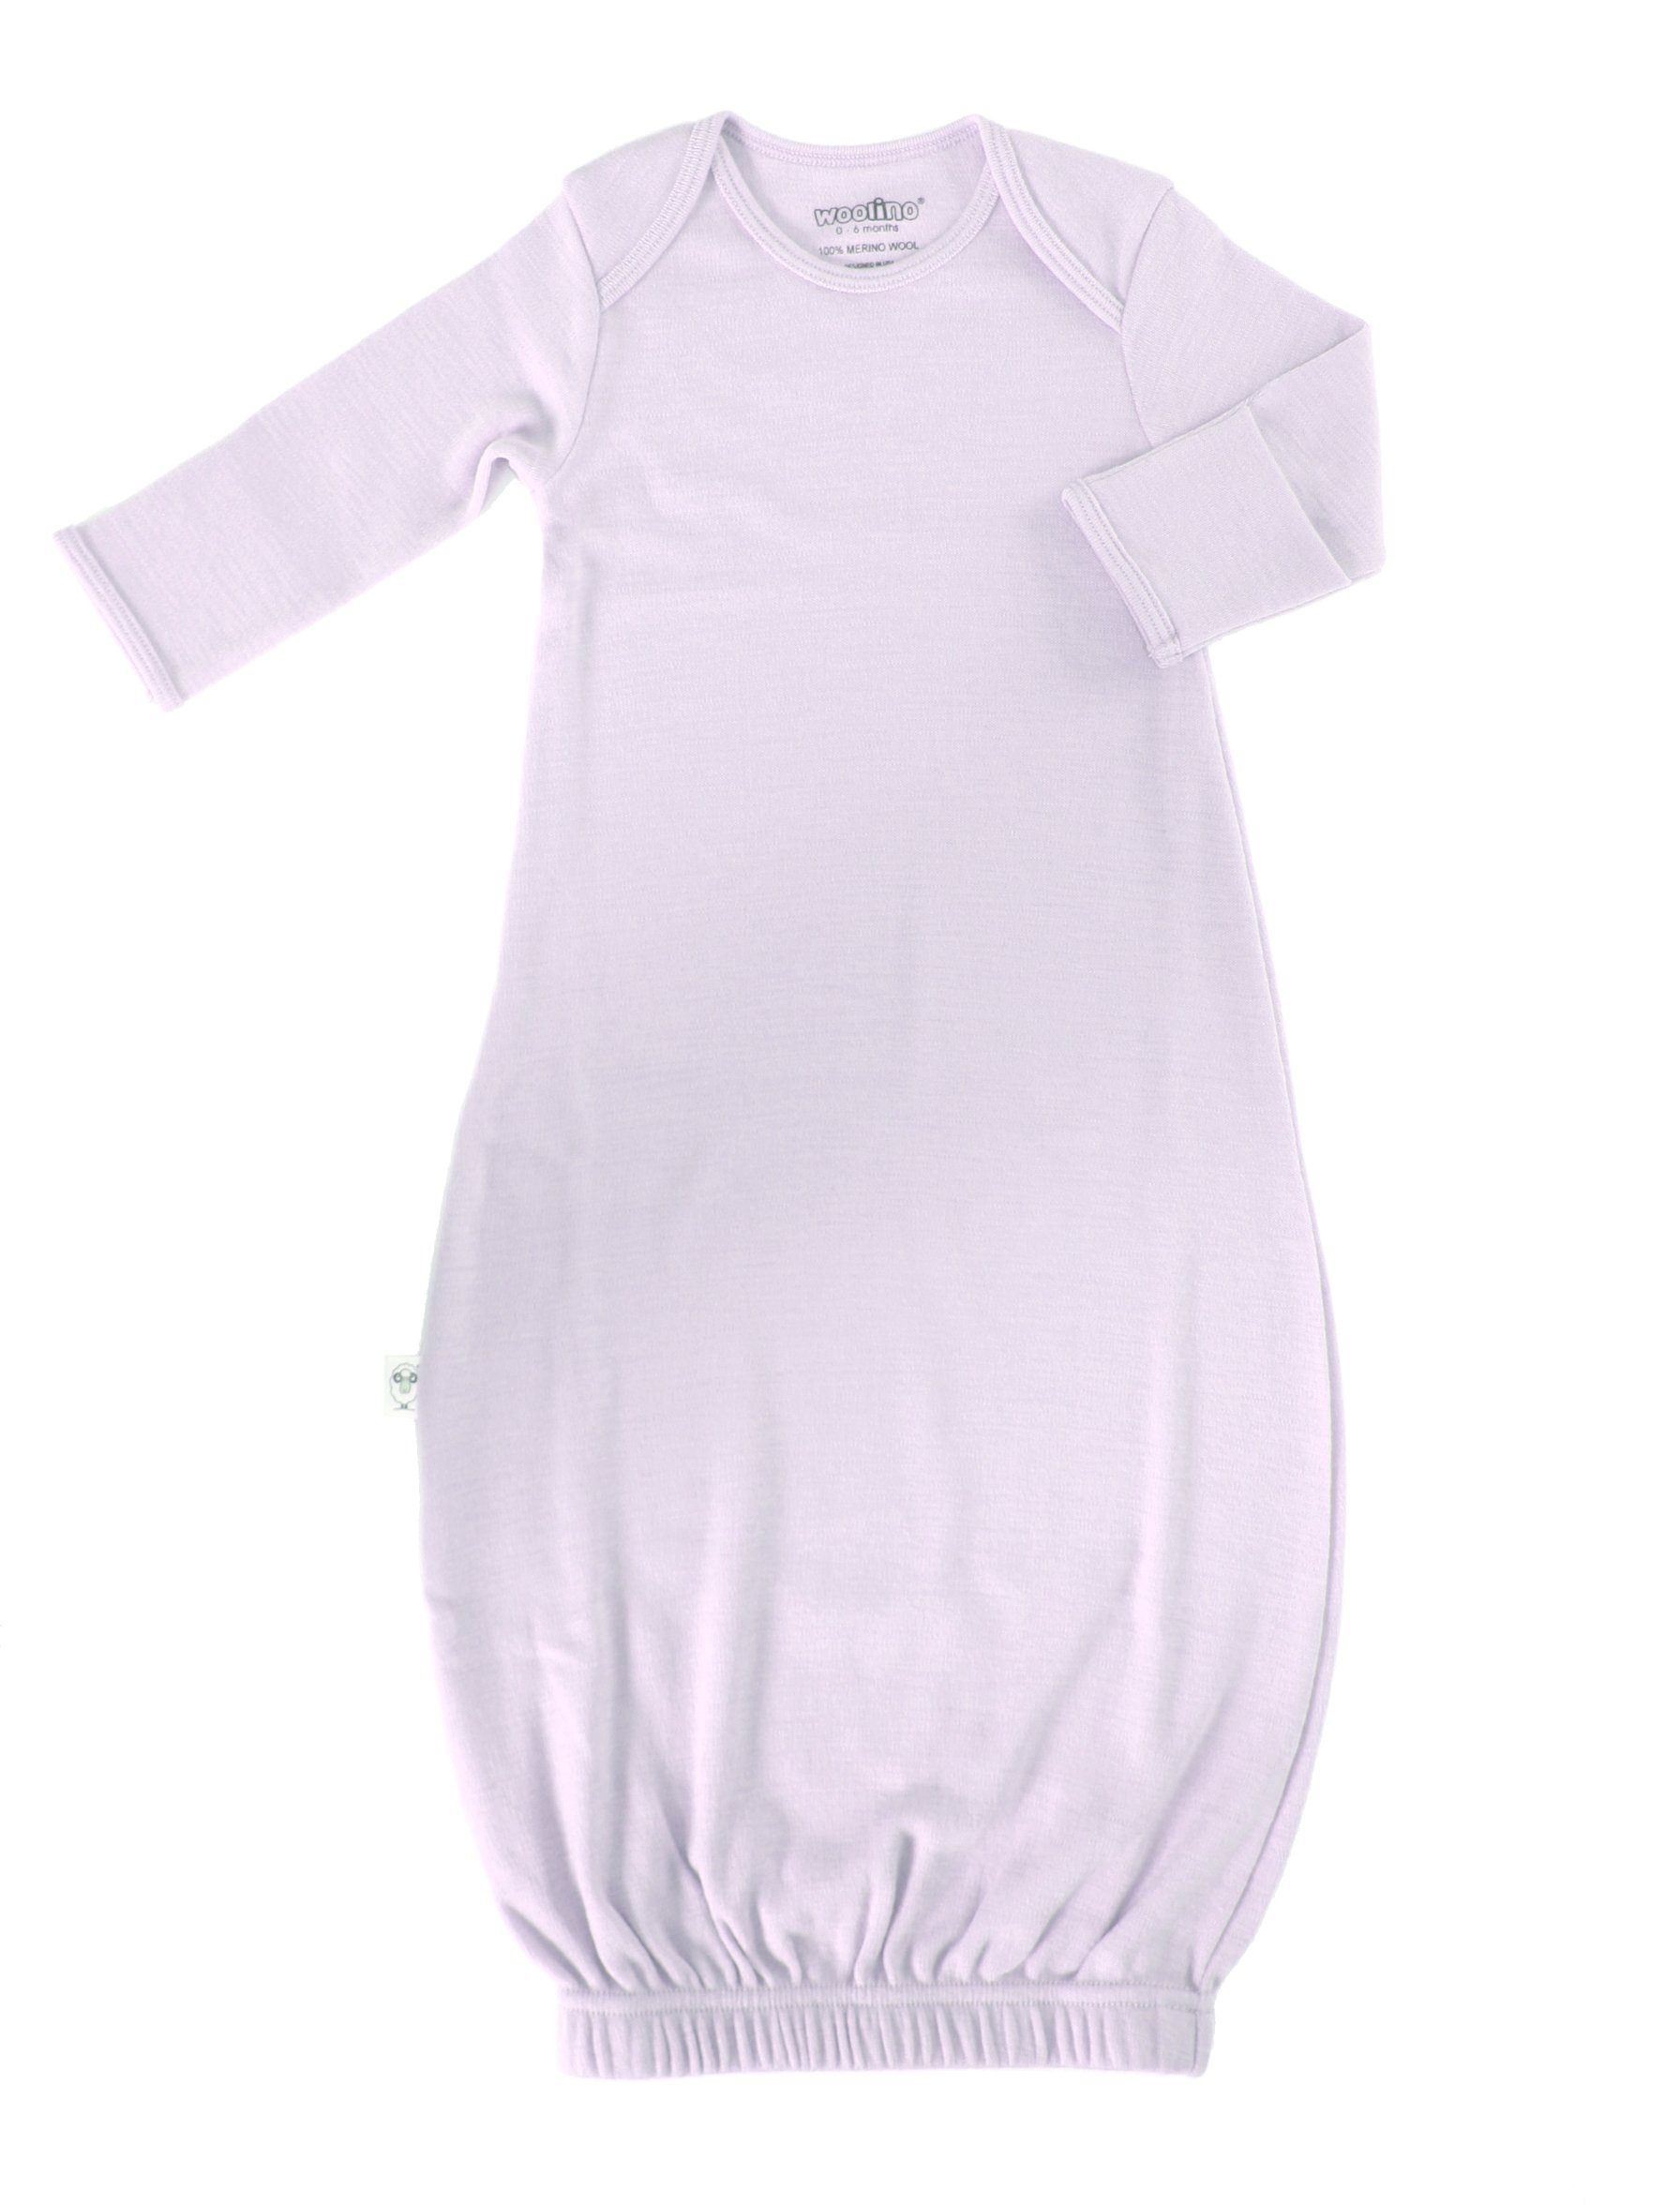 Woolino Infant Gown,100% Superfine Merino Wool, 0-6 Months, Lilac